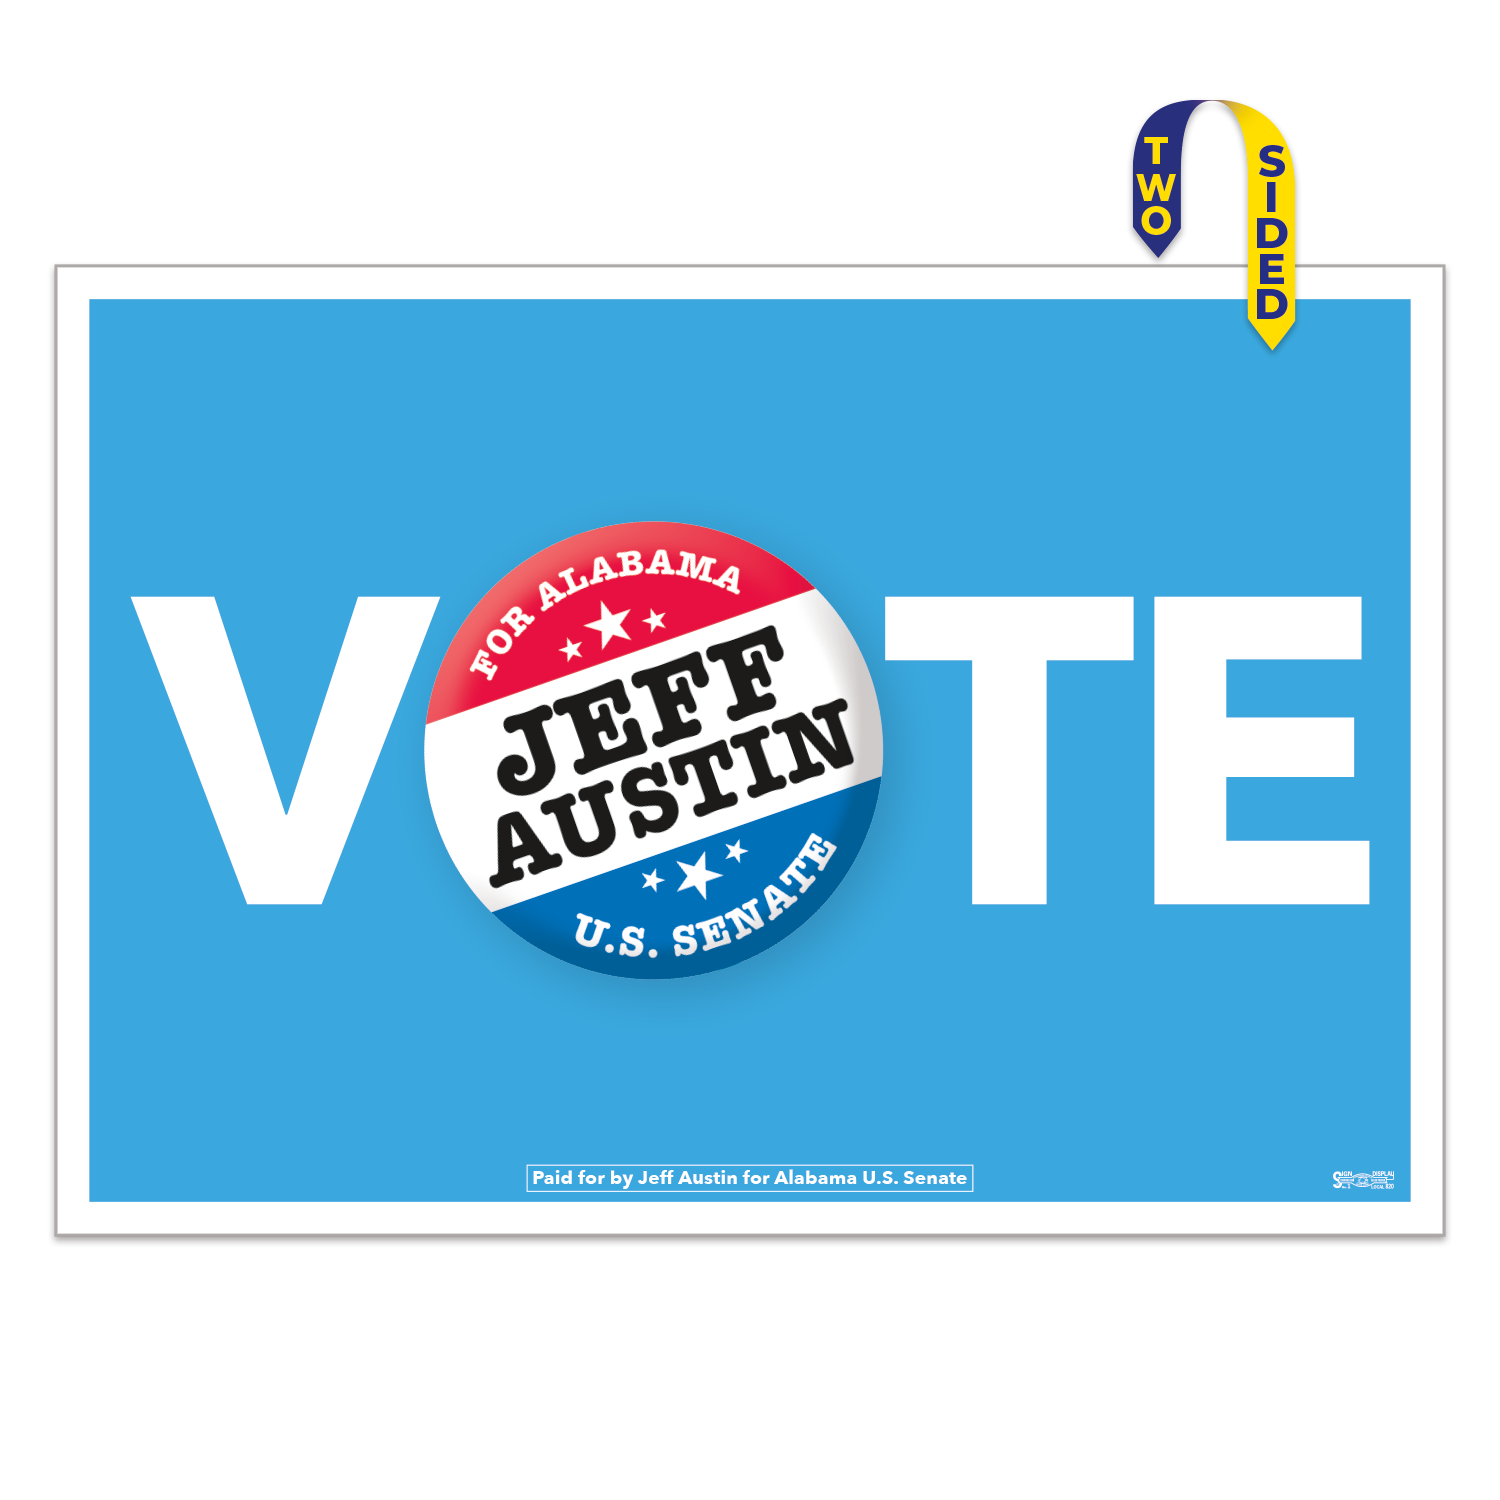 https://www.sswprinting.com/images/products_gallery_images/19923_Vote-Jeff_hi-res.png